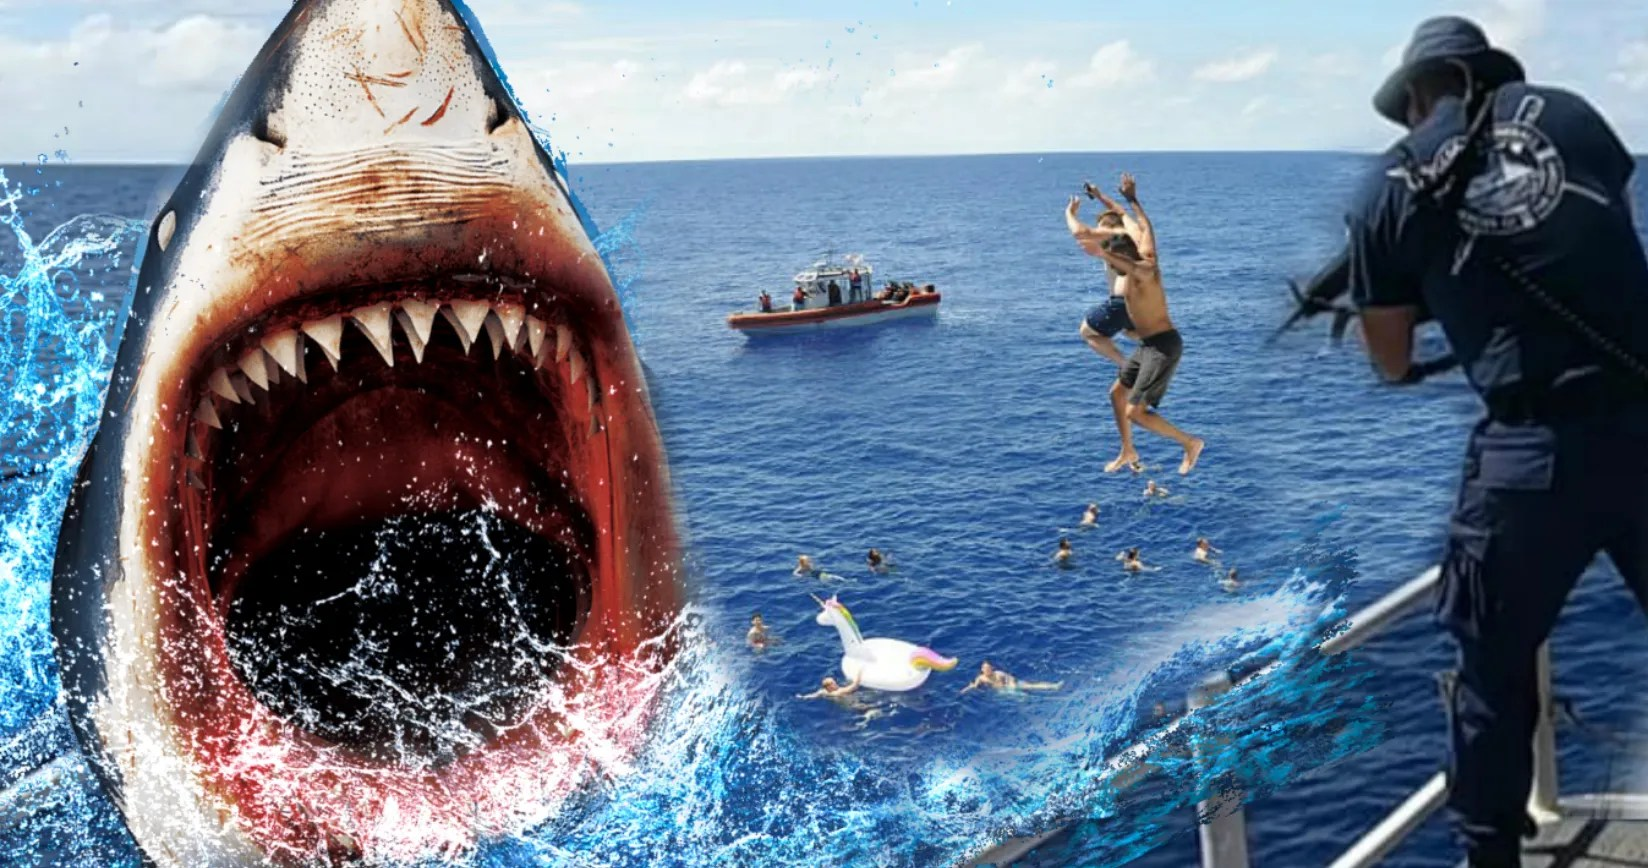 Real-life 'Jaws' Stalks Swimmers, Gets Shot at by the Coast Guard